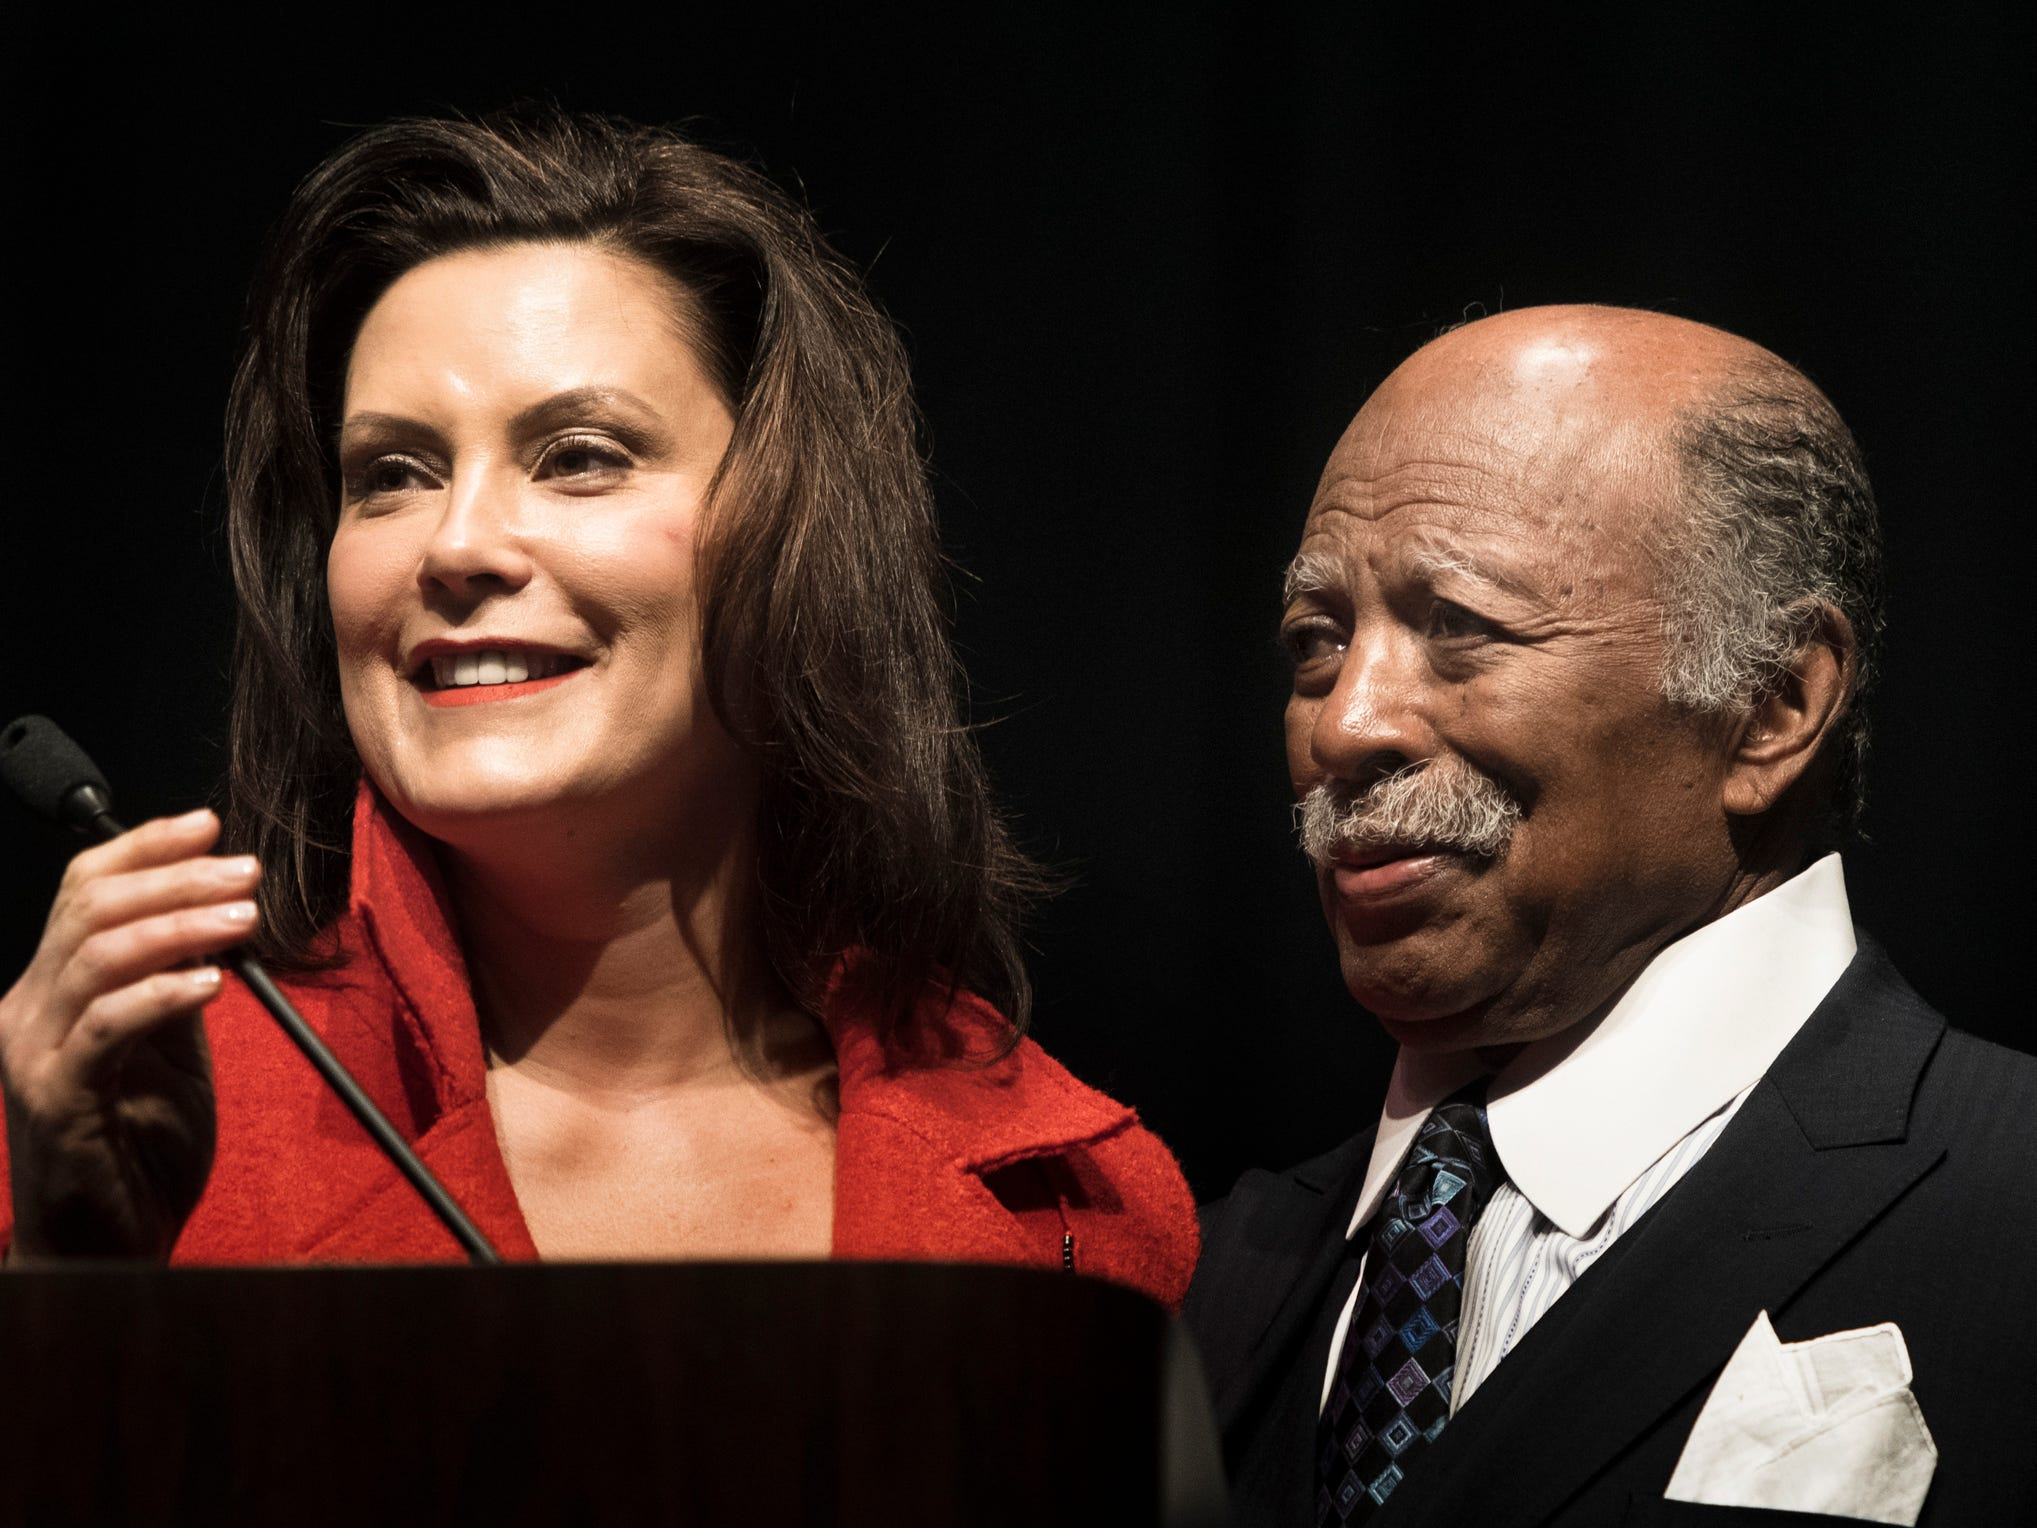 Michigan Governor Gretchen Whitmer talks about Gregory Eaton, right, recipient of the King Legacy & Service Award, Monday, Jan. 21, 2019, at the 34th Annual MLK Holiday Luncheon Celebration at The Lansing Center in Lansing, Michigan.  Eaton was the first black lobbyist in Michigan to work for a multi-cleint firm.  Eaton gave Magic Johnson a job when he was in high school.  He also owns Detroit-based Metro cars, and Gregory's Soul Food on Martin Luther King Jr. Blvd. in Lansing.  [AP Photo/Matthew Dae Smith/Lansing State Journal]